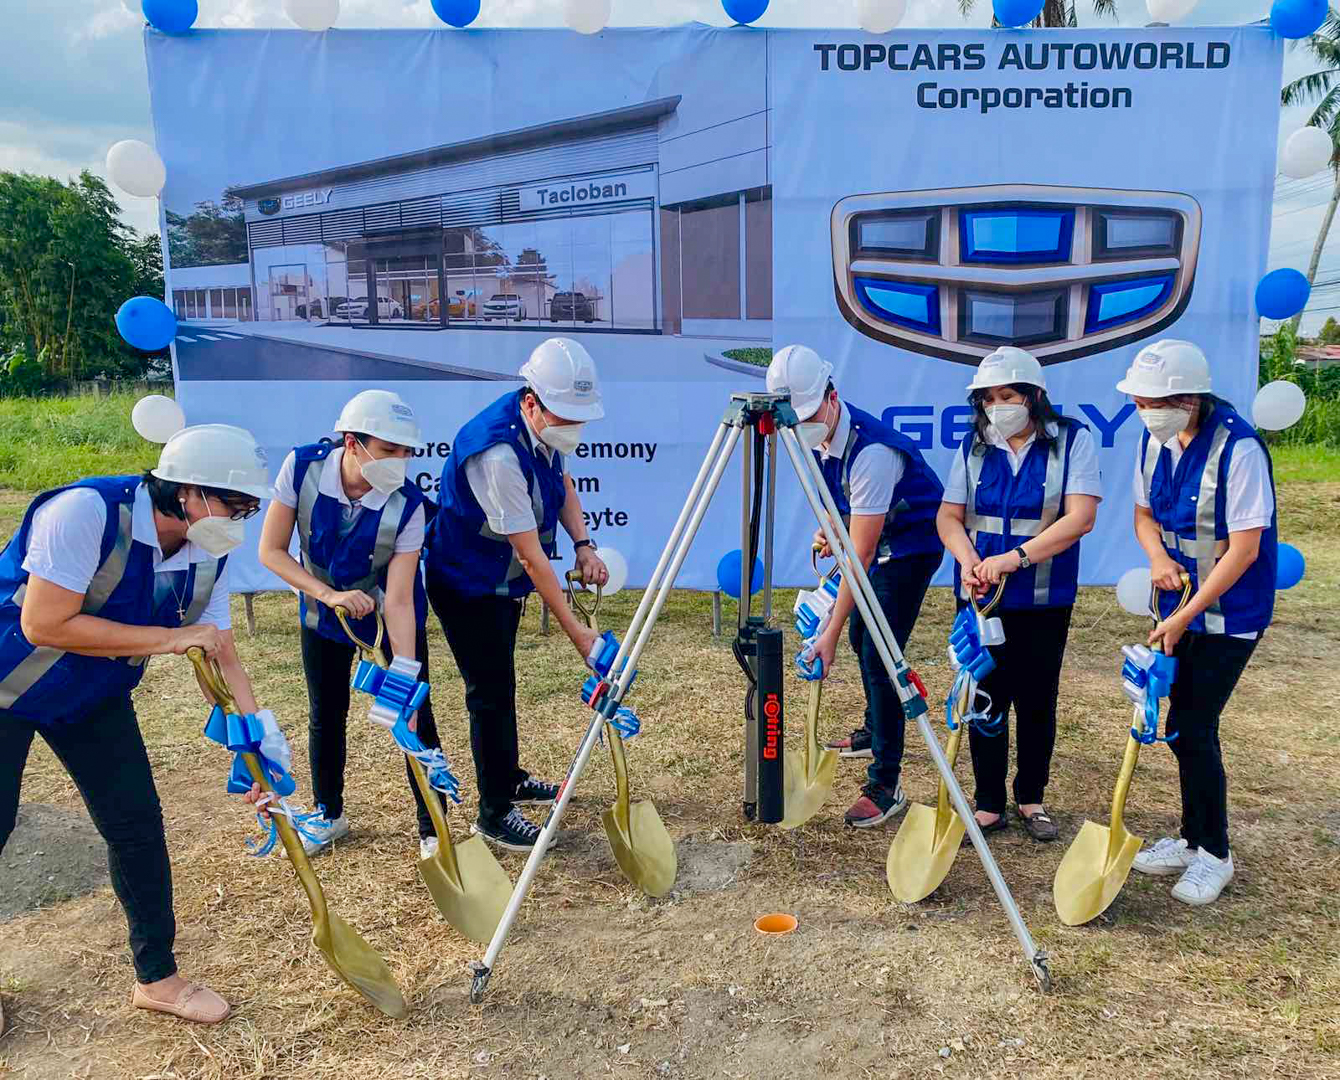 Geely PH Hastens Expansion Activities, Breaks Ground for New Outlets in  Calamba, Tacloban, and Bacolod